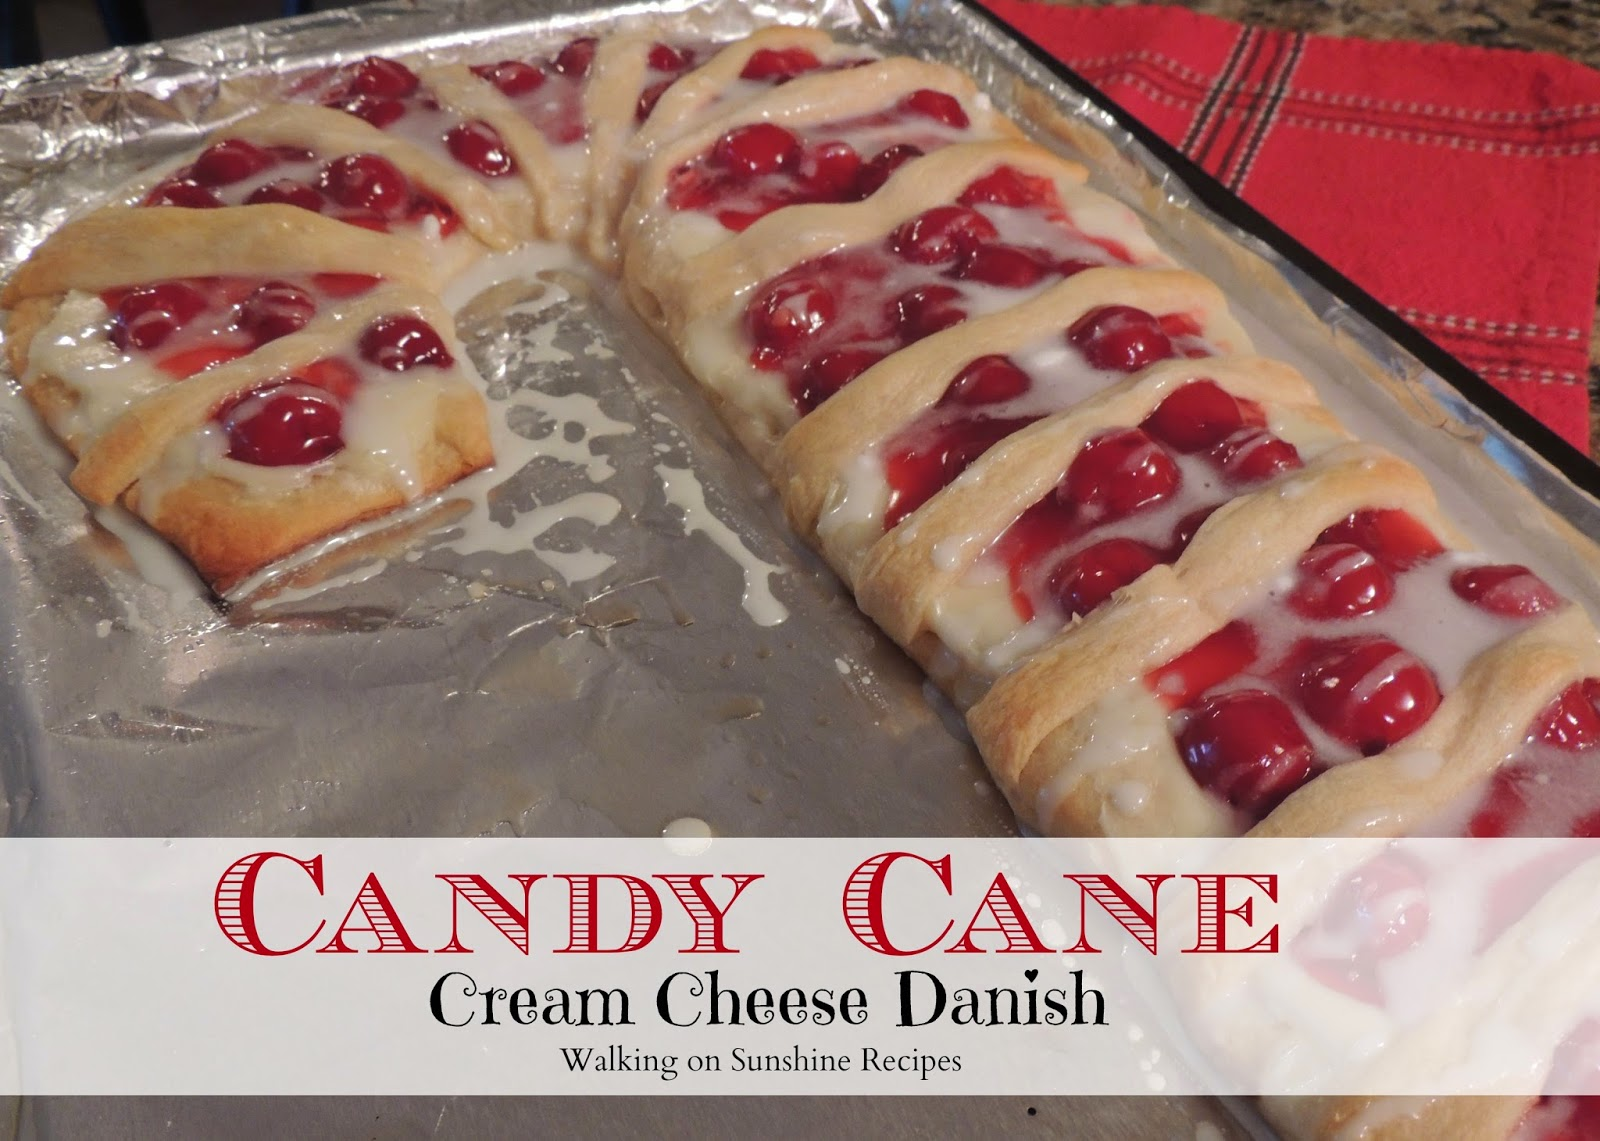 Candy Cane Cream Cheese Danish / Walking on Sunshine Recipes